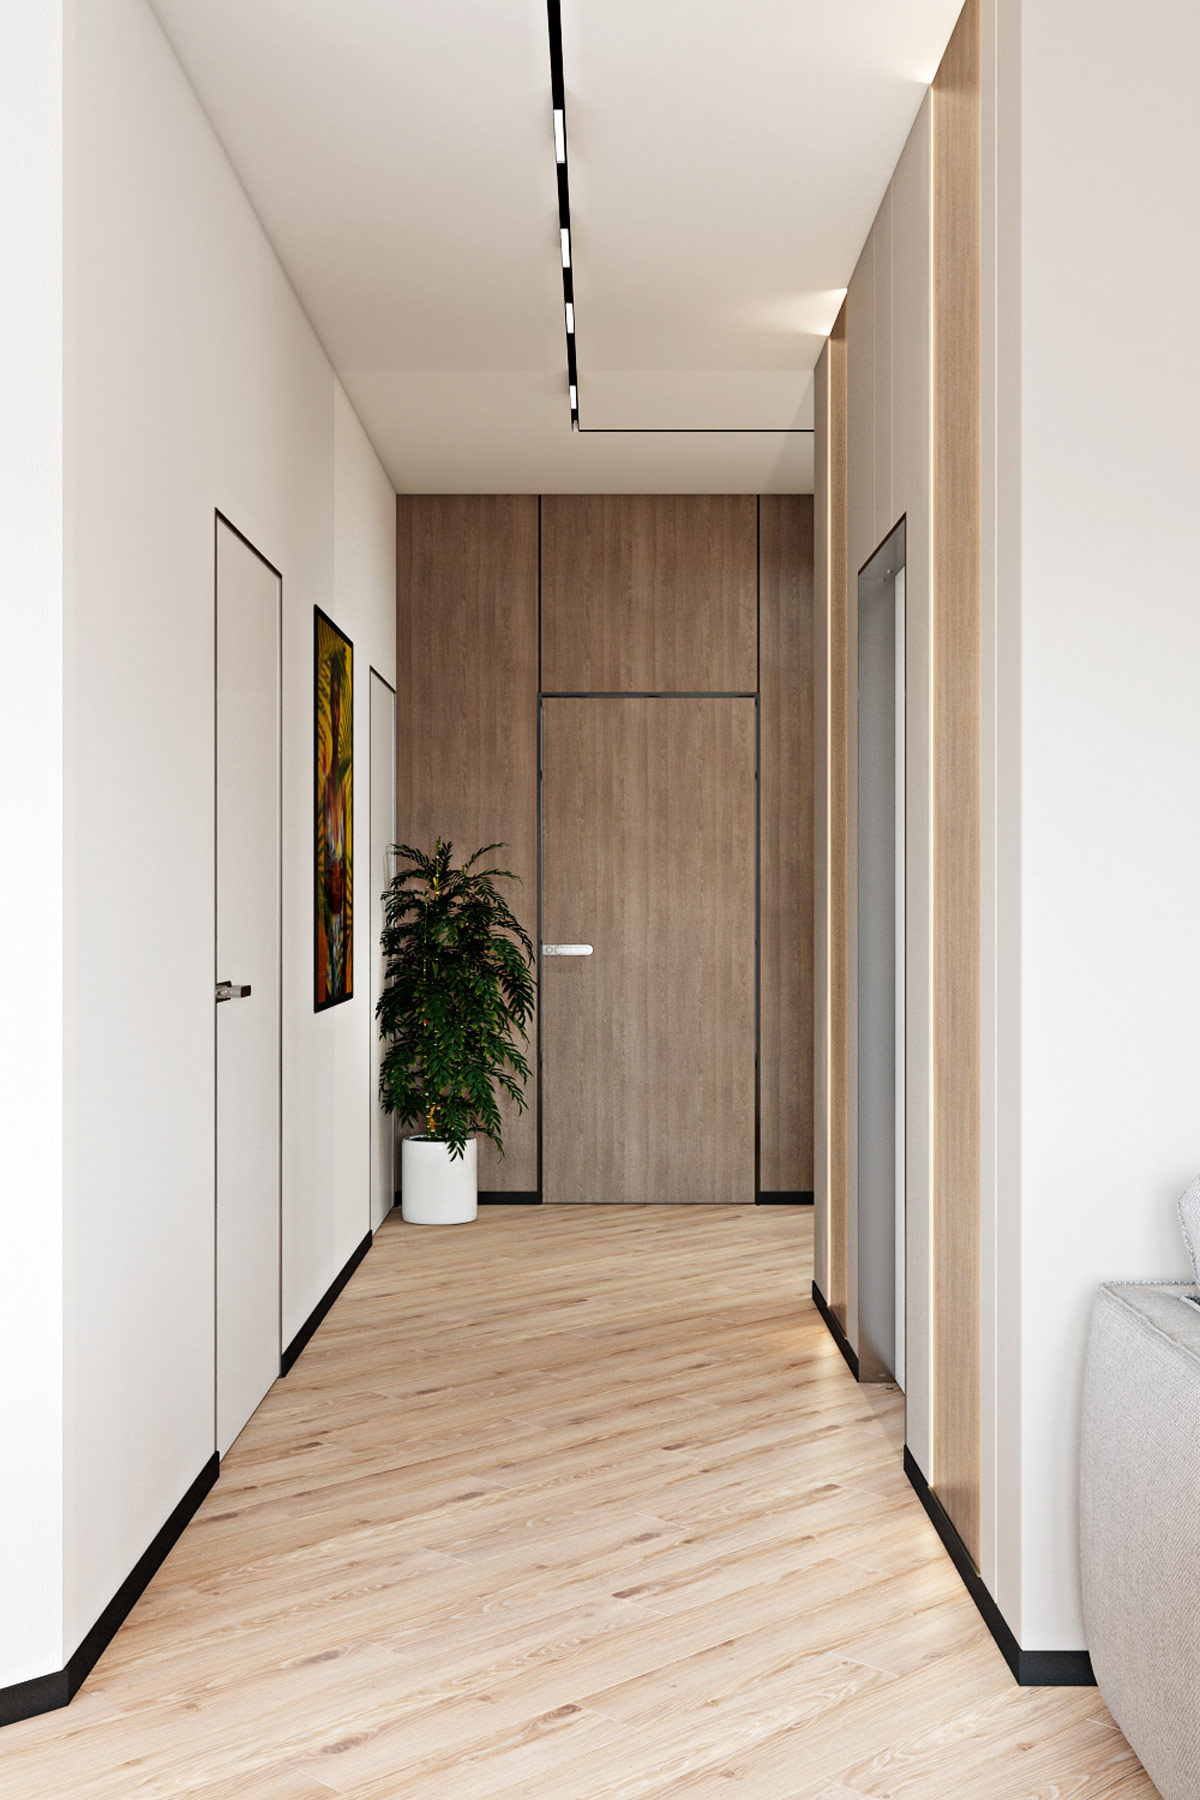 wide-hallway-layout-in-modern-family-home-with-wood-accent-wall